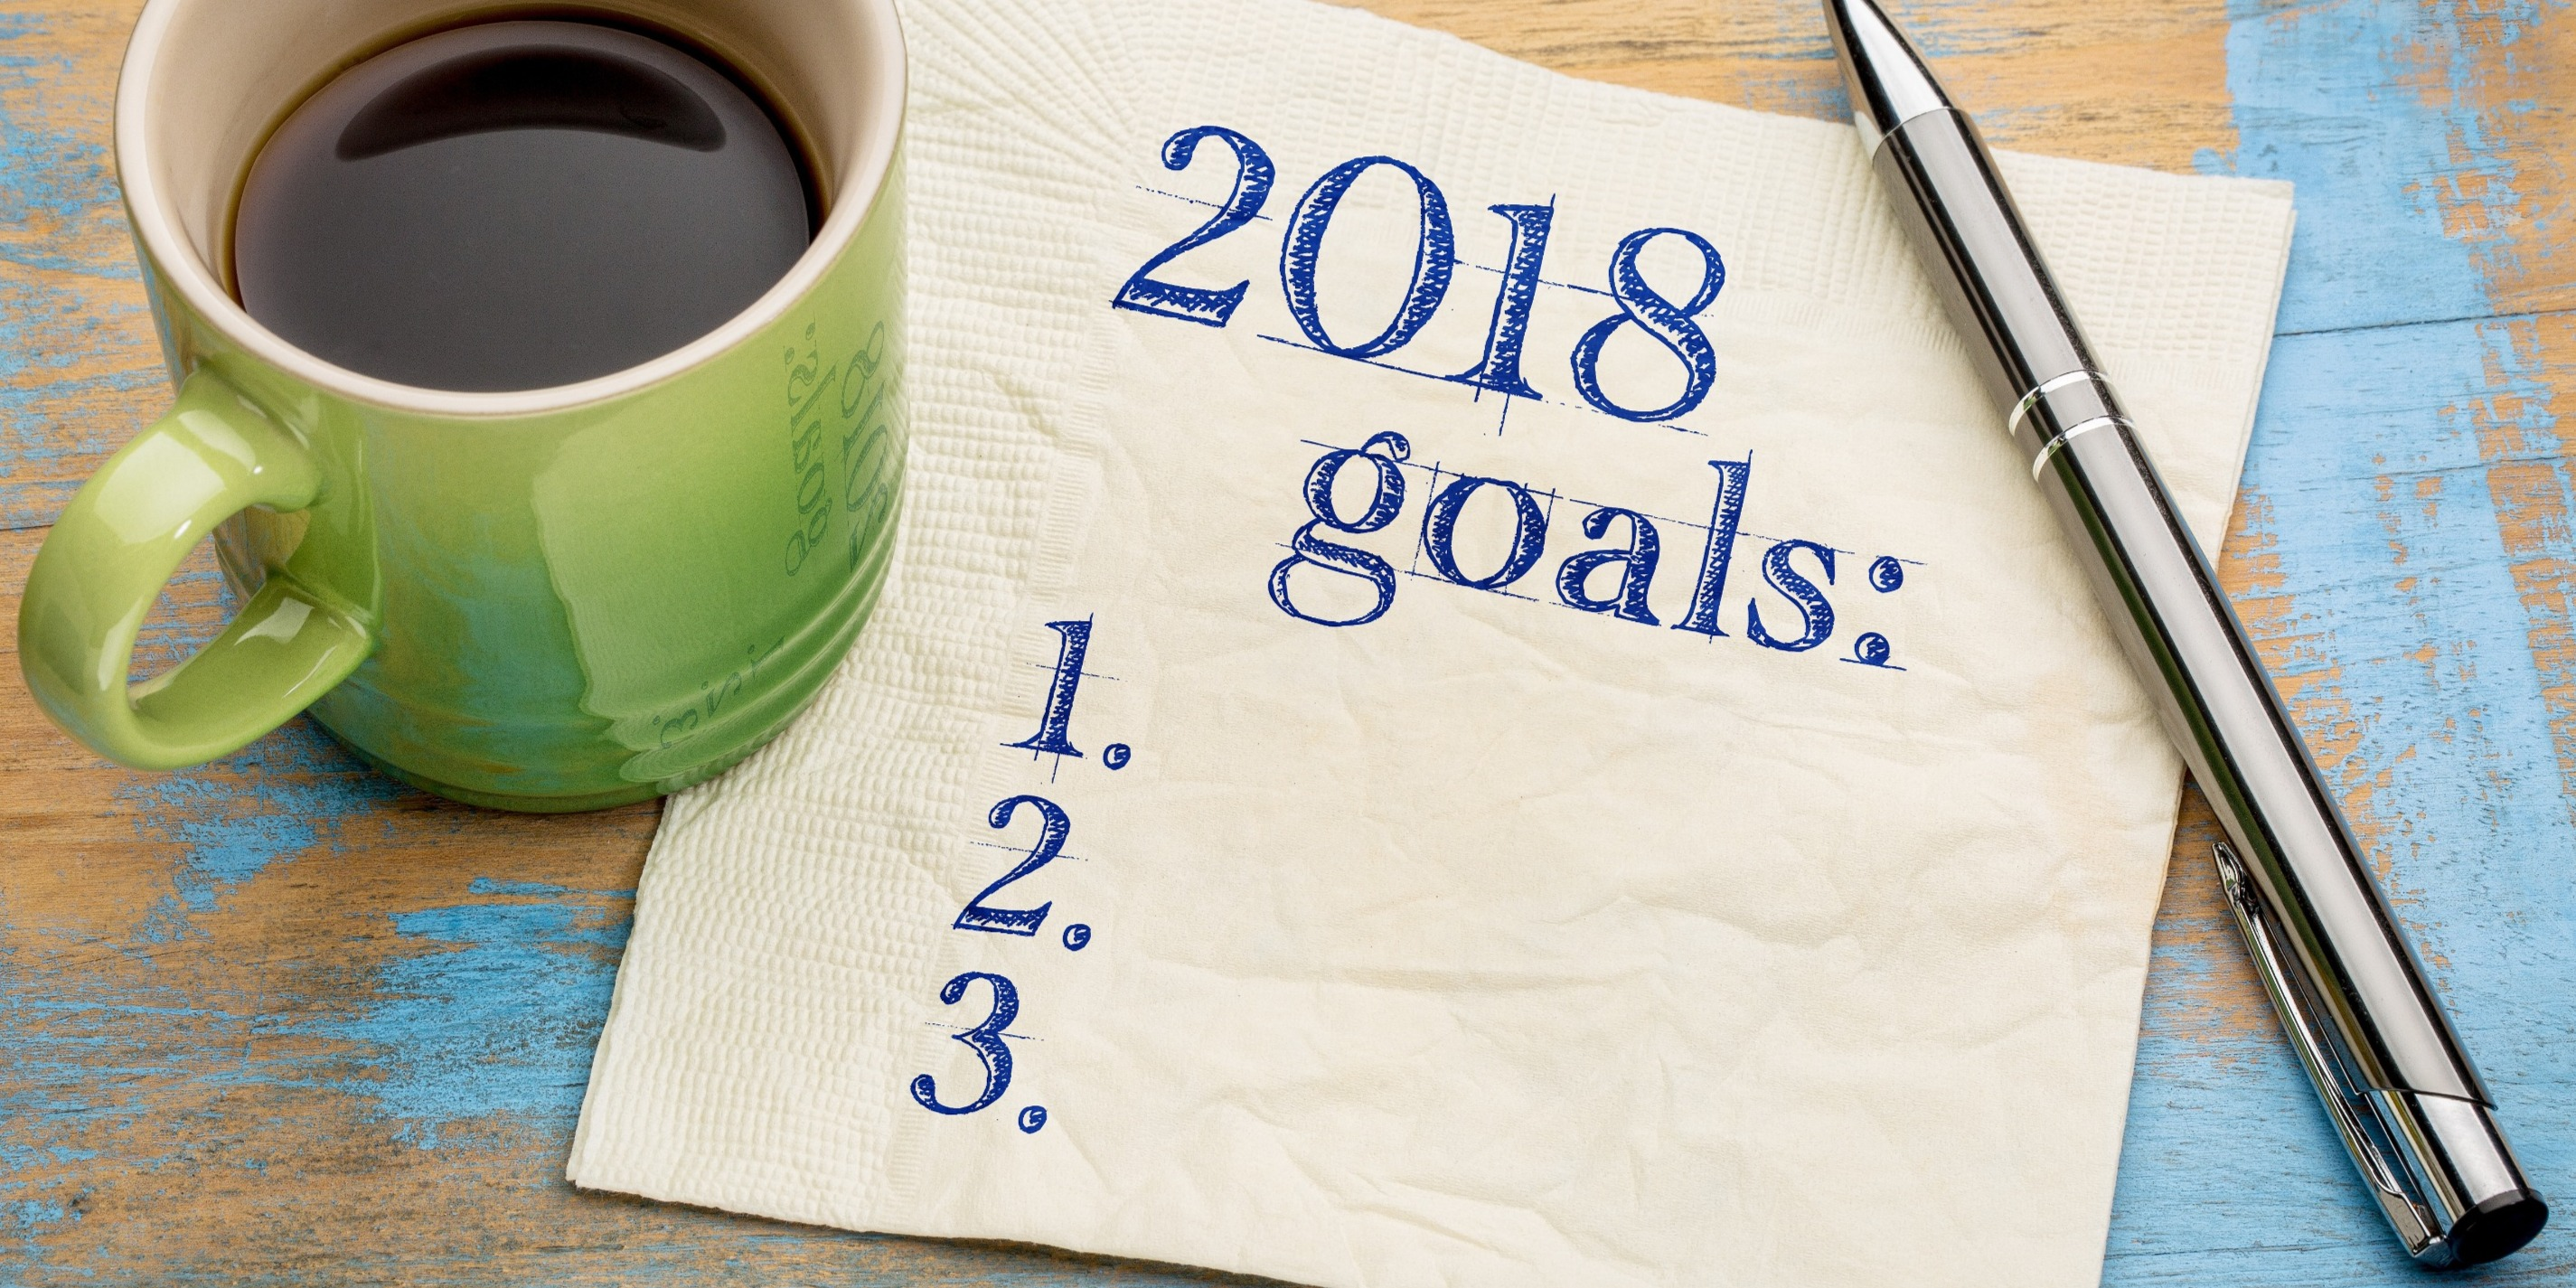 3 New Business Strategies for the New Year